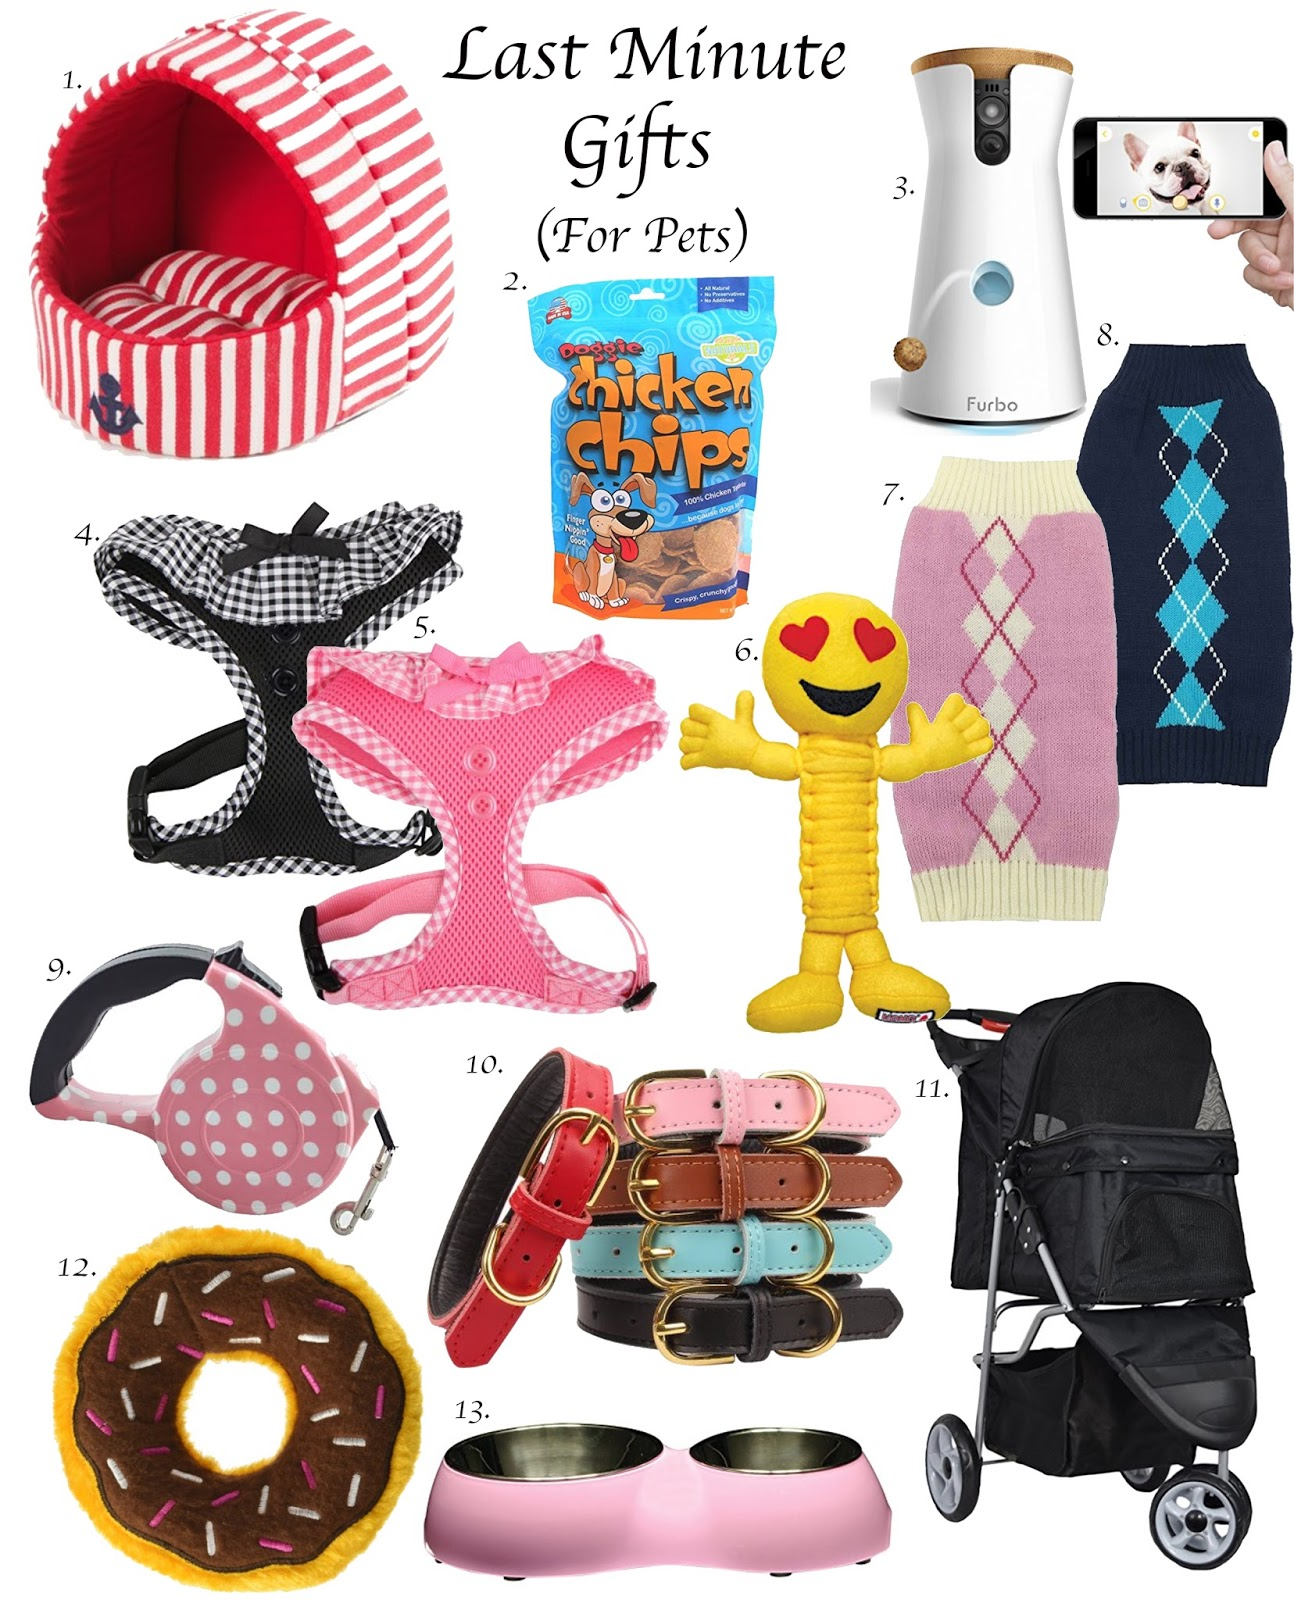 Gifts For Pets - Something Delightful Blog